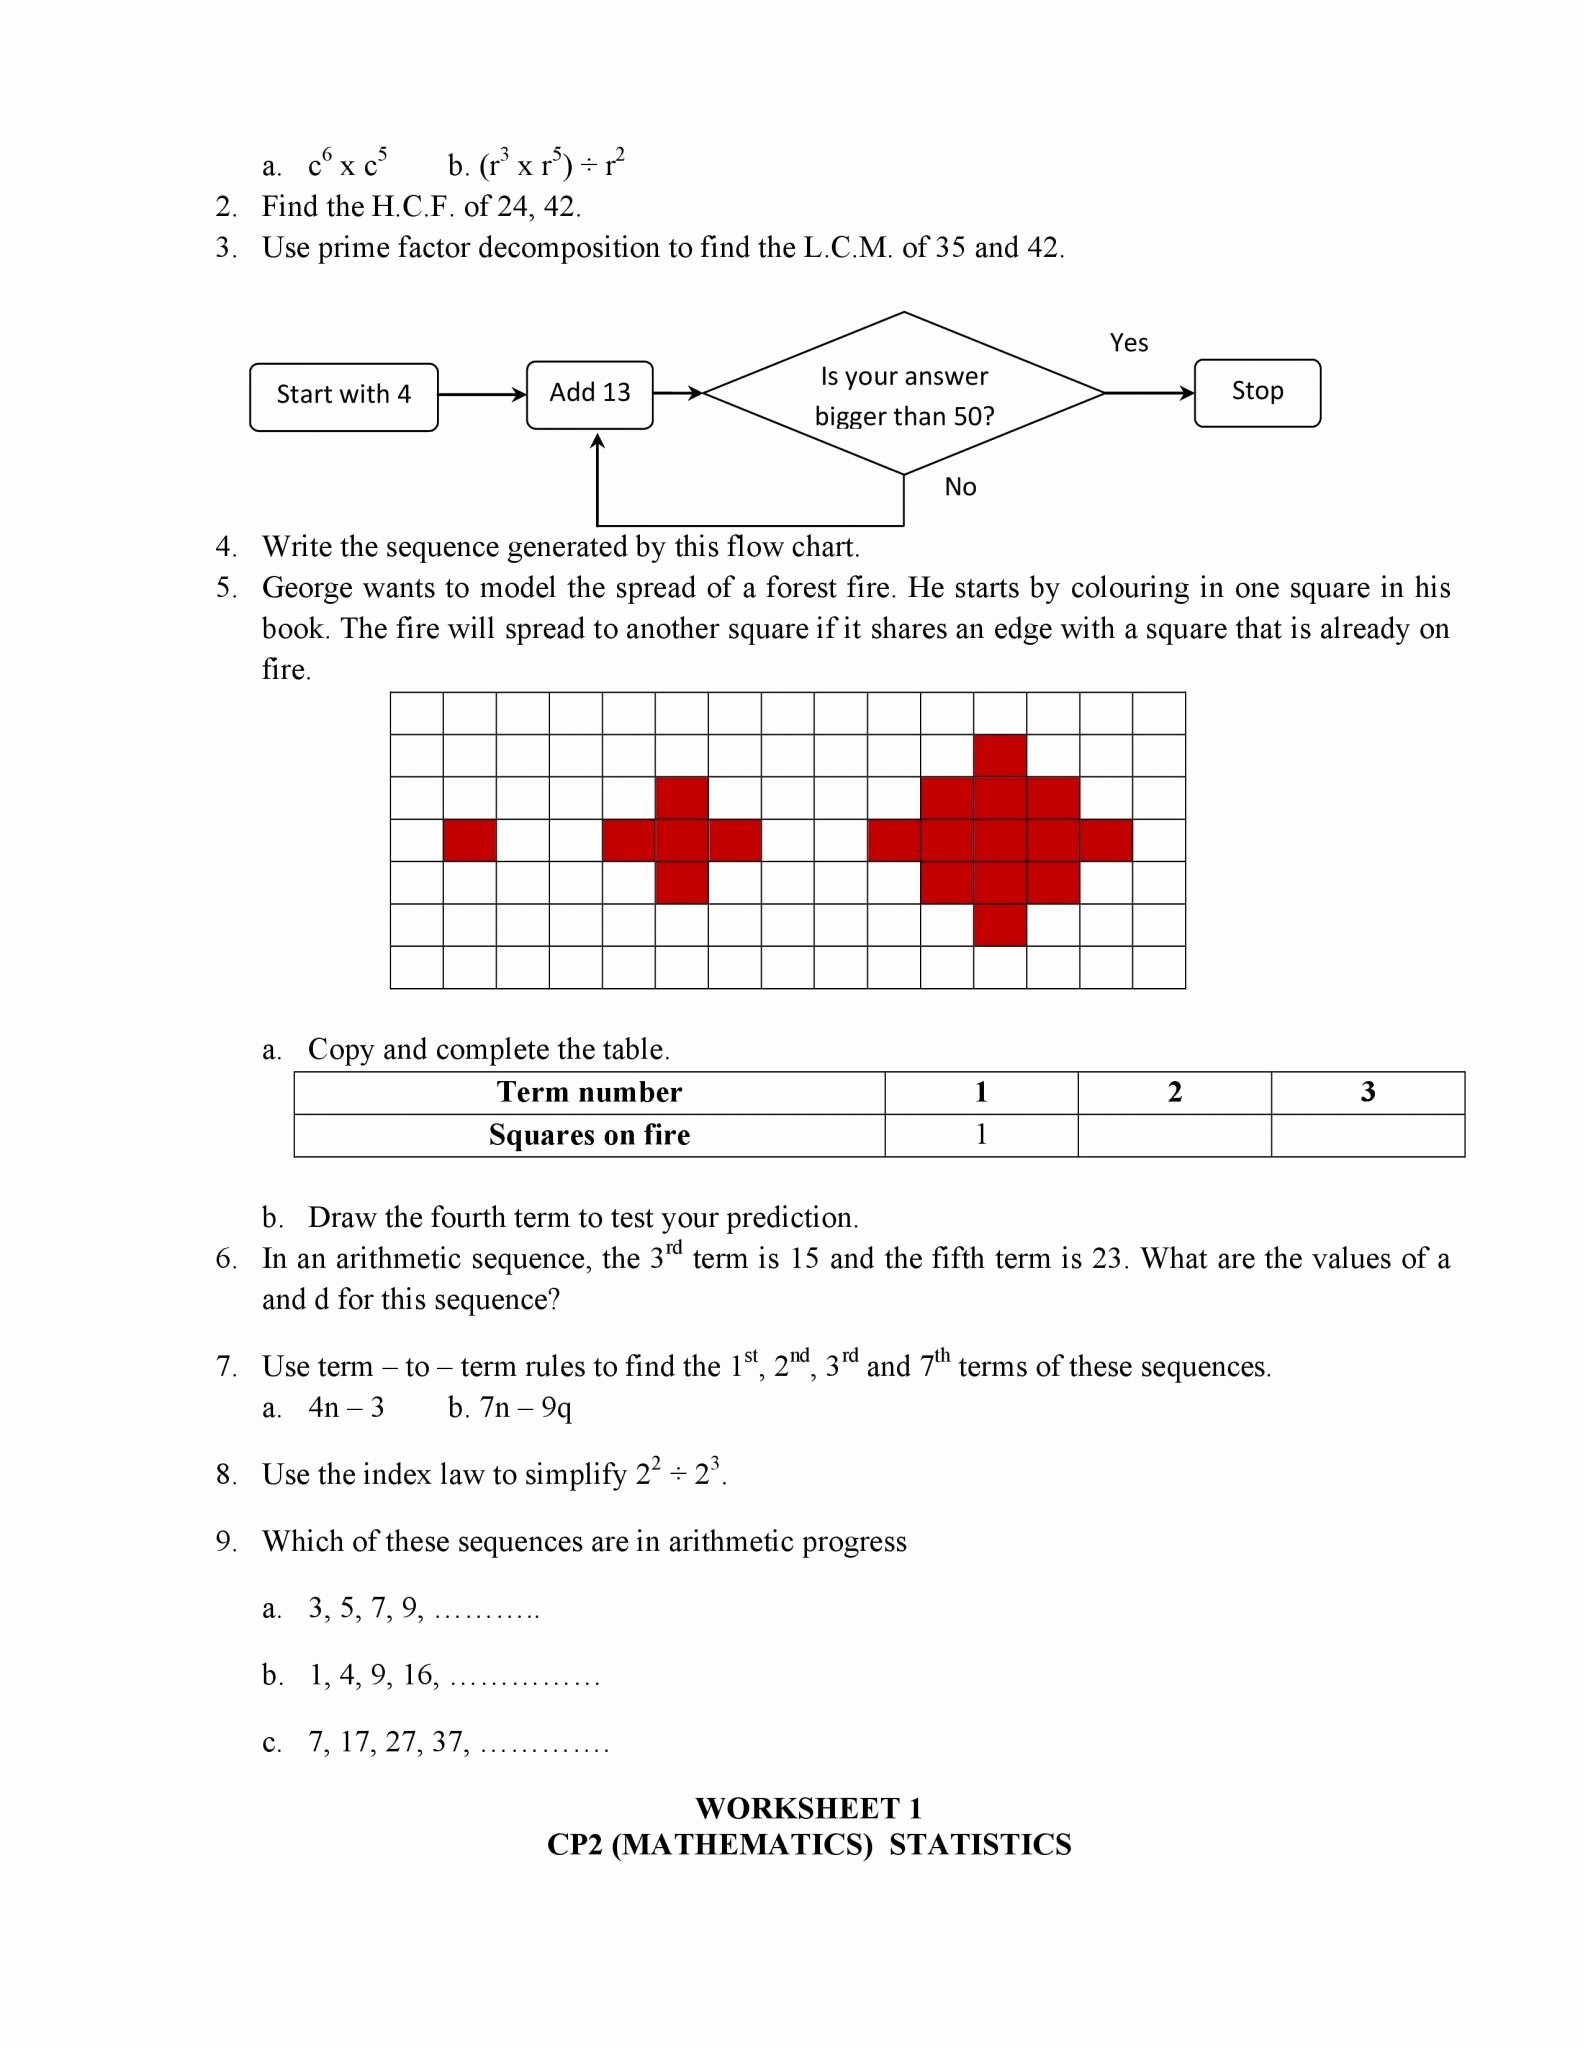 Arithmetic Sequences Worksheet Answers Luxury Arithmetic Sequences Worksheet 1 Answer Key